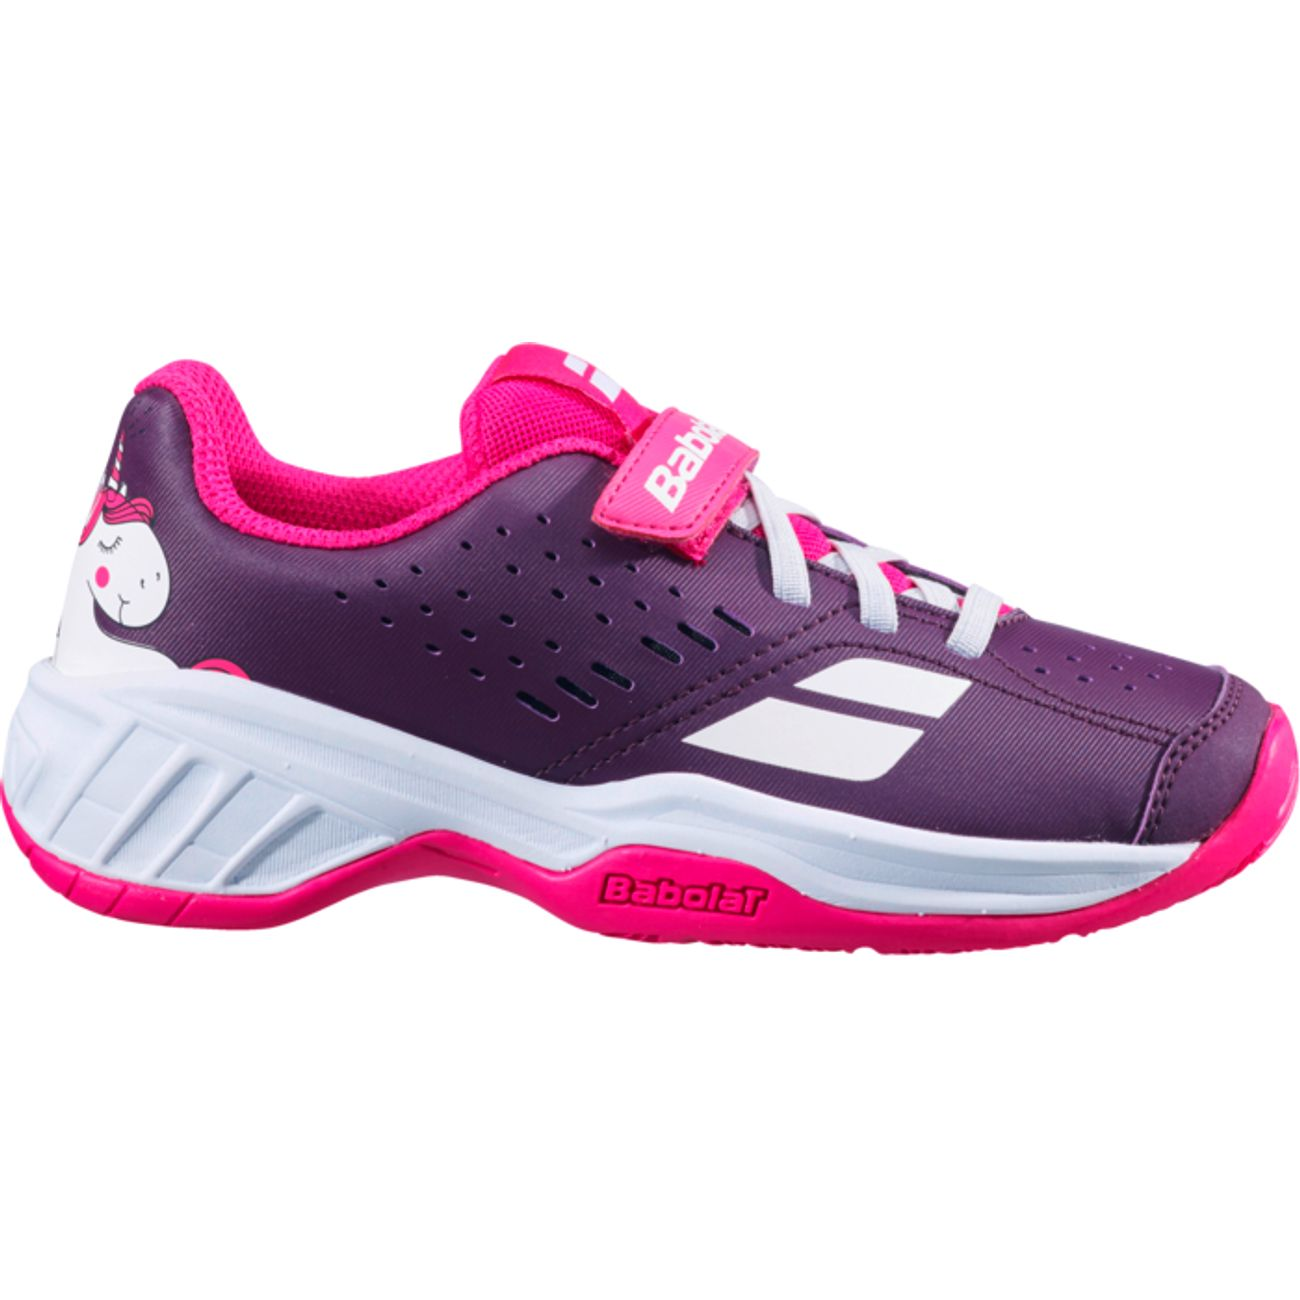 CHAUSSURES BASSES Tennis fille BABOLAT PULSION